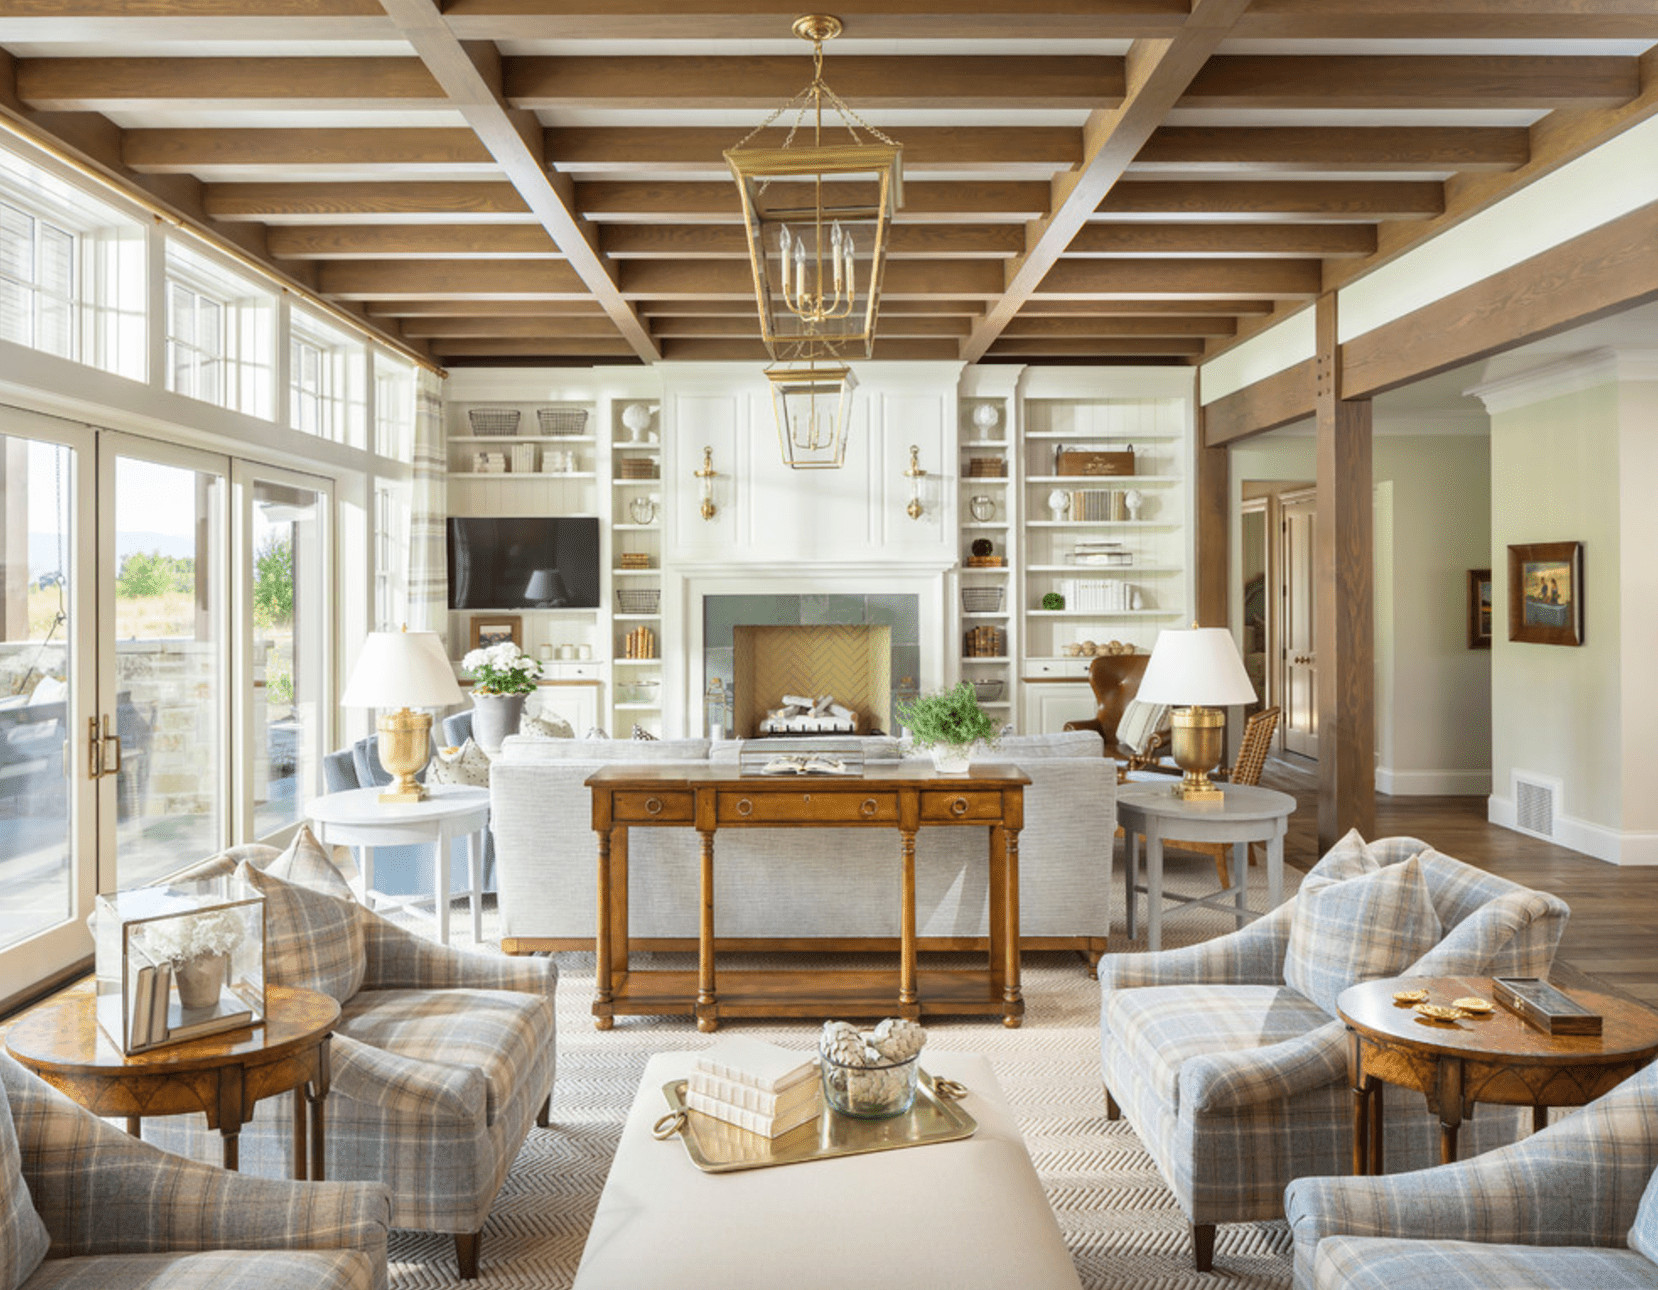 Rustic Living Room Ideas Unique 40 Rustic Living Room Ideas to Fashion Your Revamp Around